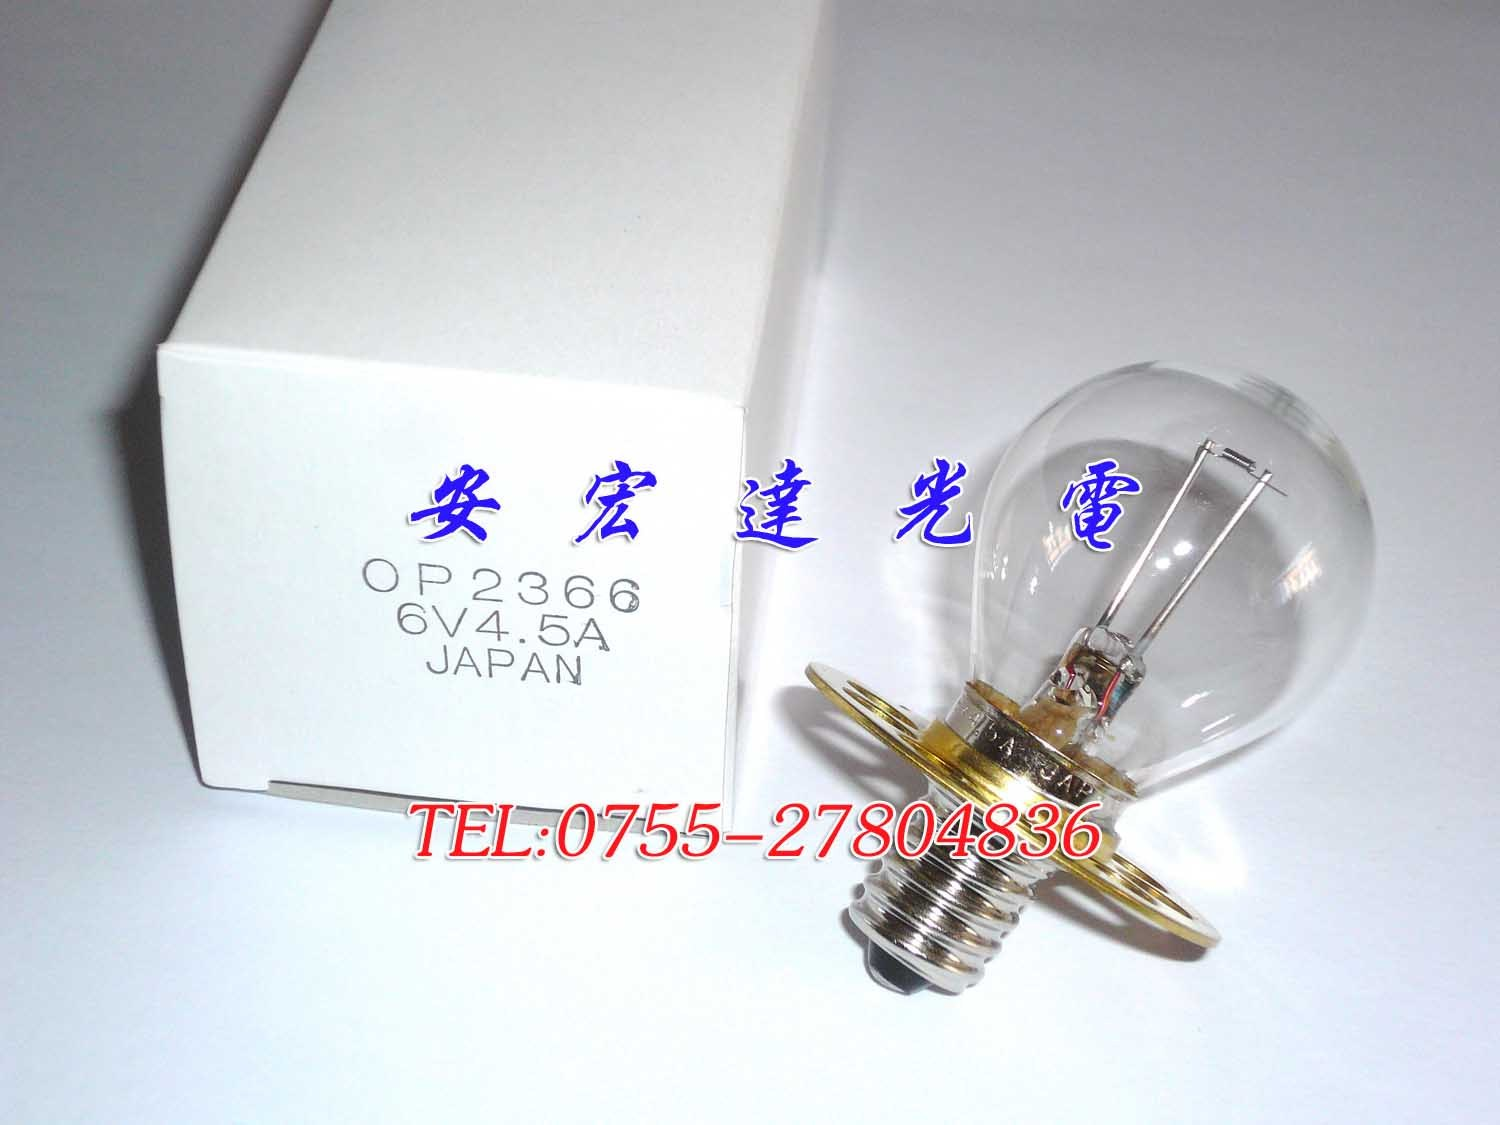 Chs900 slit lamp light bulb hs366 6v 4.5a op366